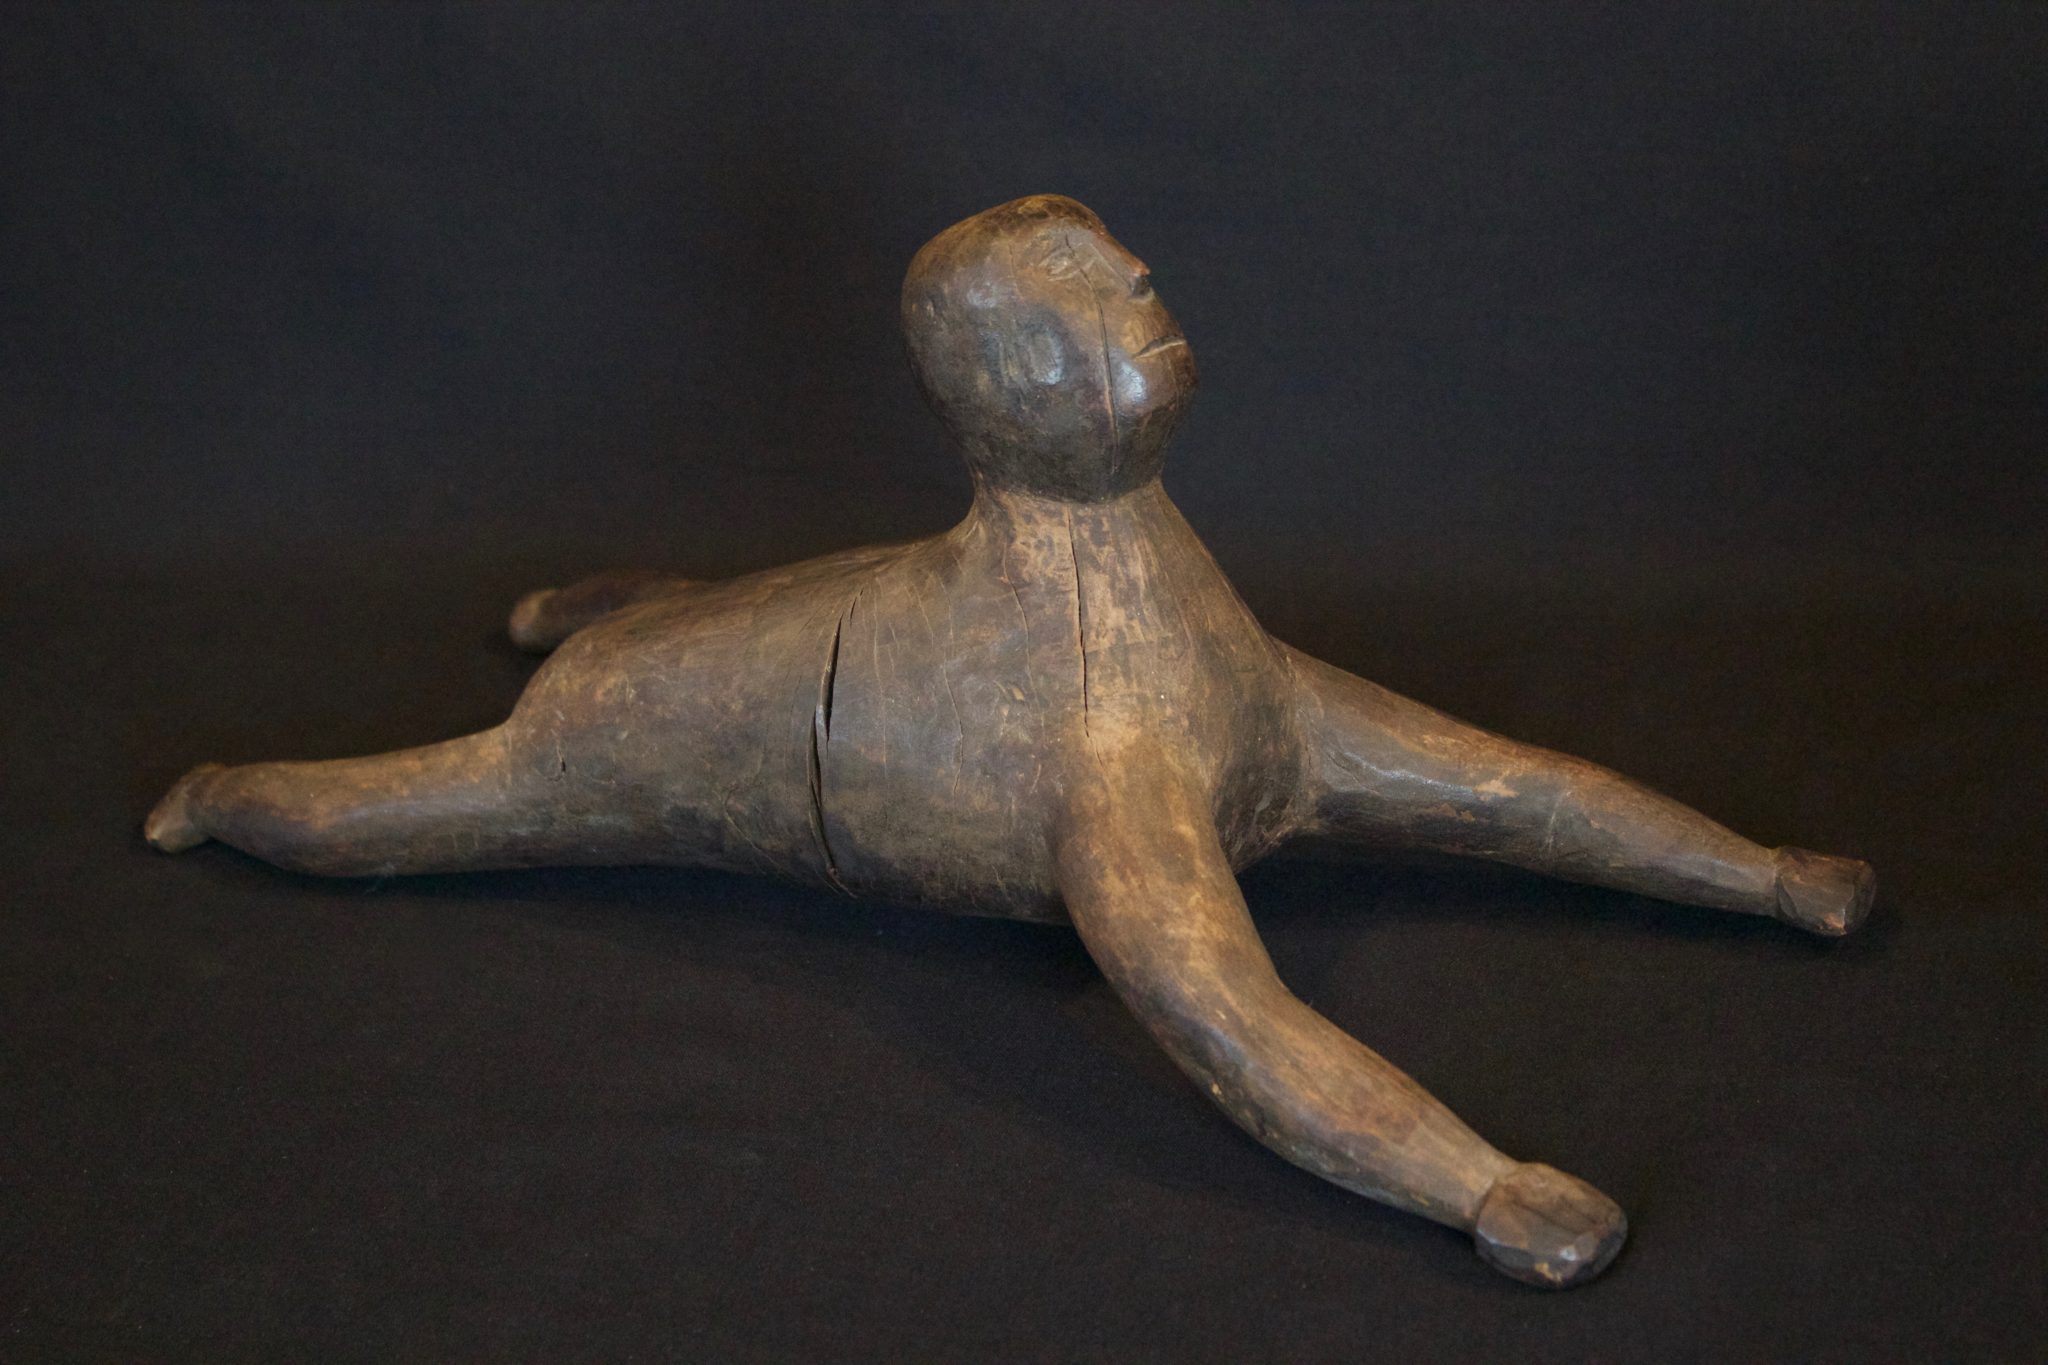 """Hunting Spirit Guide, West Sumba Island, Lesser Sunda Islands, Indonesia, Kodi village. Early to mid 20th c. Wood, patinated with use and age. Spirit guide figure to pray to before hunting or fishing. 7"""" x 6 ½"""" x 16"""", $325."""